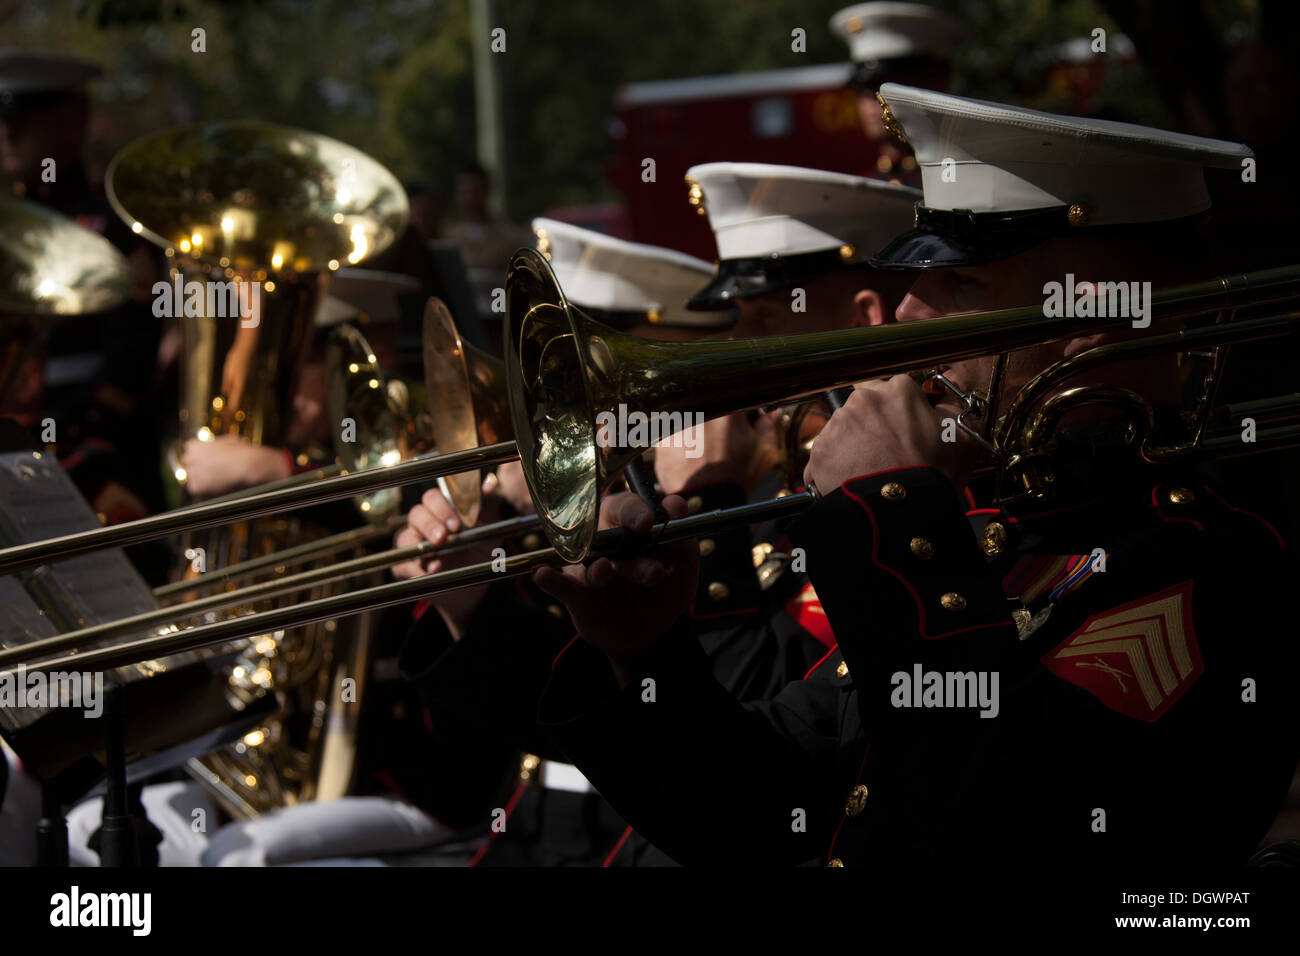 U.S. Marines with the 2d Marine Division Band, perform during an observance ceremony at the Beirut Memorial in Jacksonville, N.C., Oct. 23, 2013. The city of Jacksonville holds a ceremony every year in honor and remembrance of those affected by the bombin - Stock Image